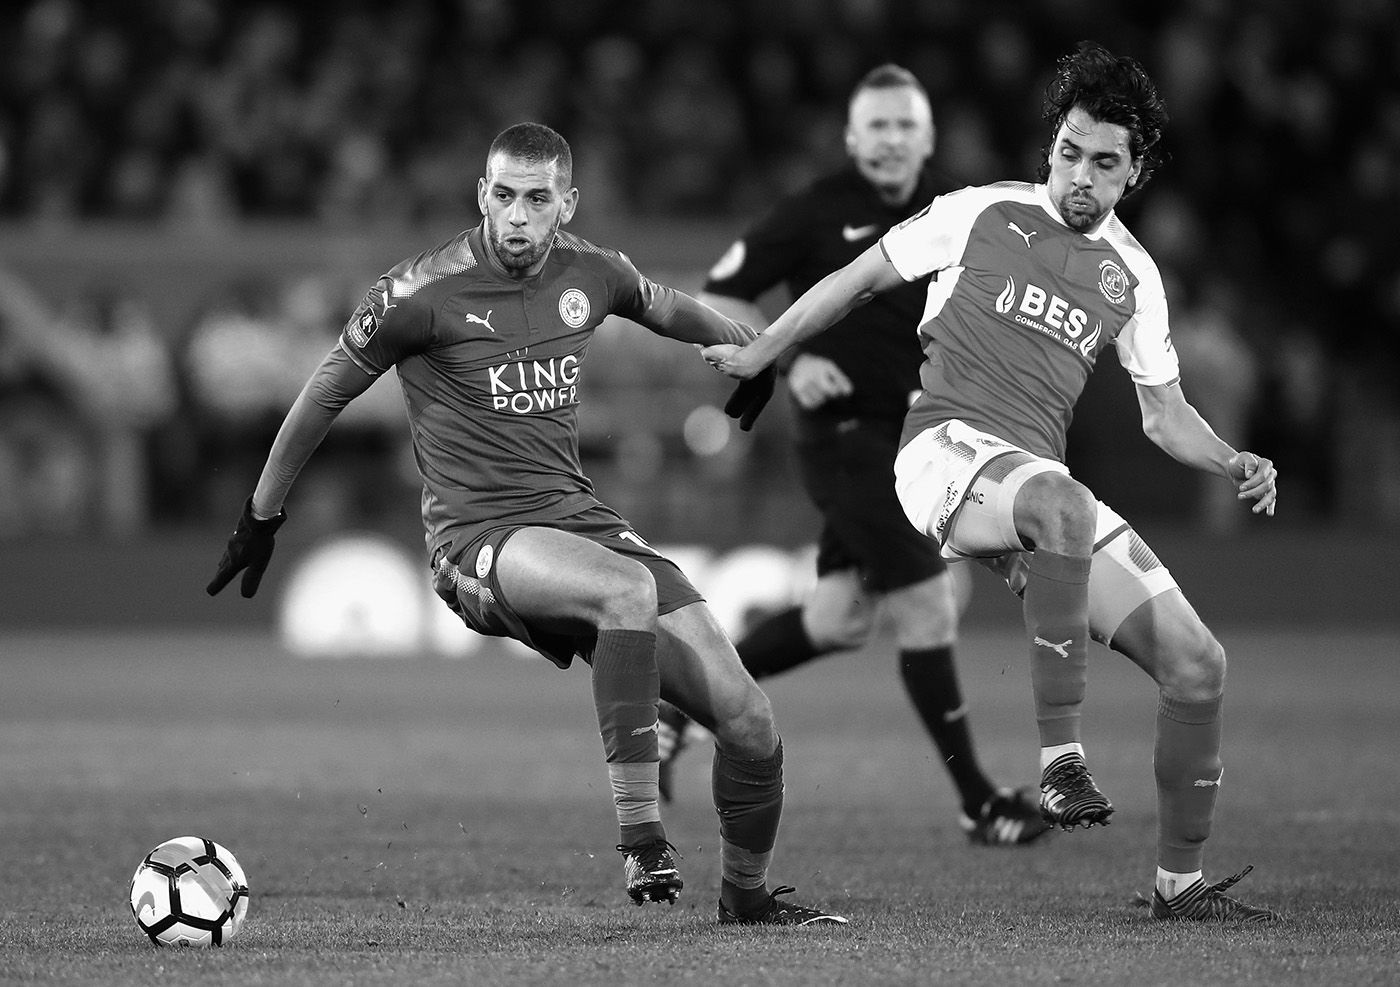 Islam Slimani in action for Leicester City - now he will be tasked with keeping Newcastle in the Premier League.